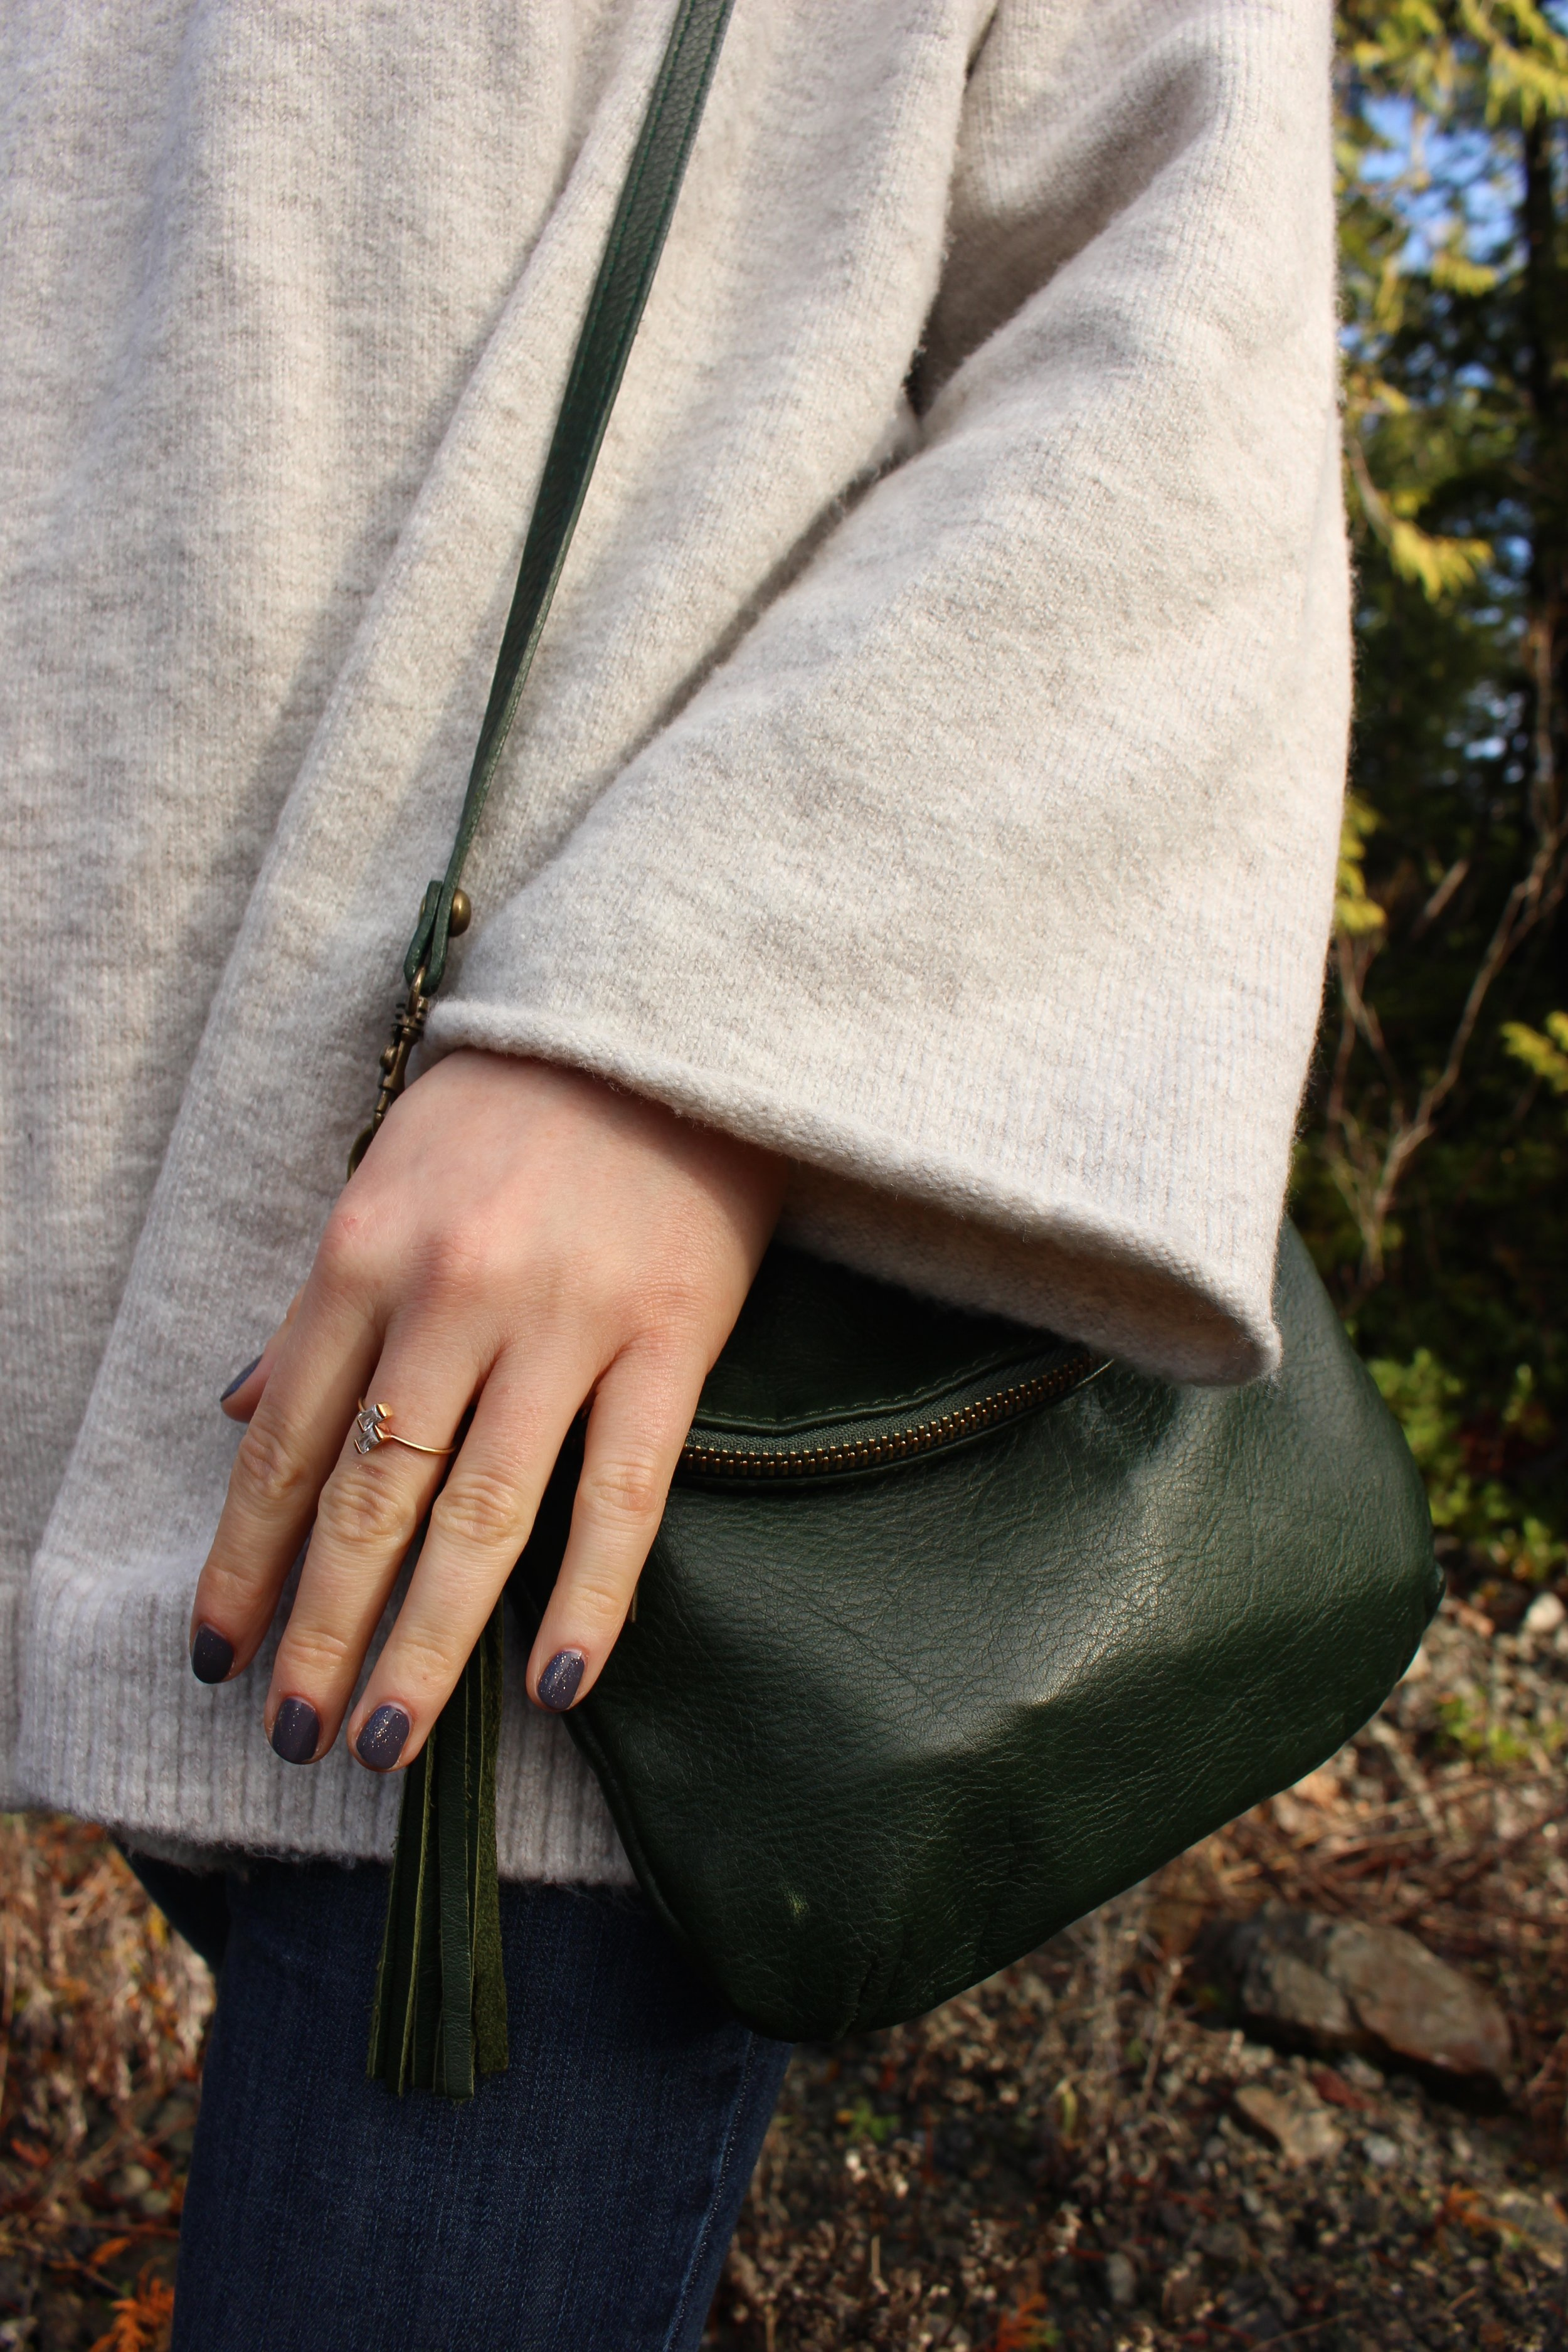 Details: Little Gold Ring, Essie Nail Polish with Gold Sparkles as Topcoat, Handmade Italian Leather Bag